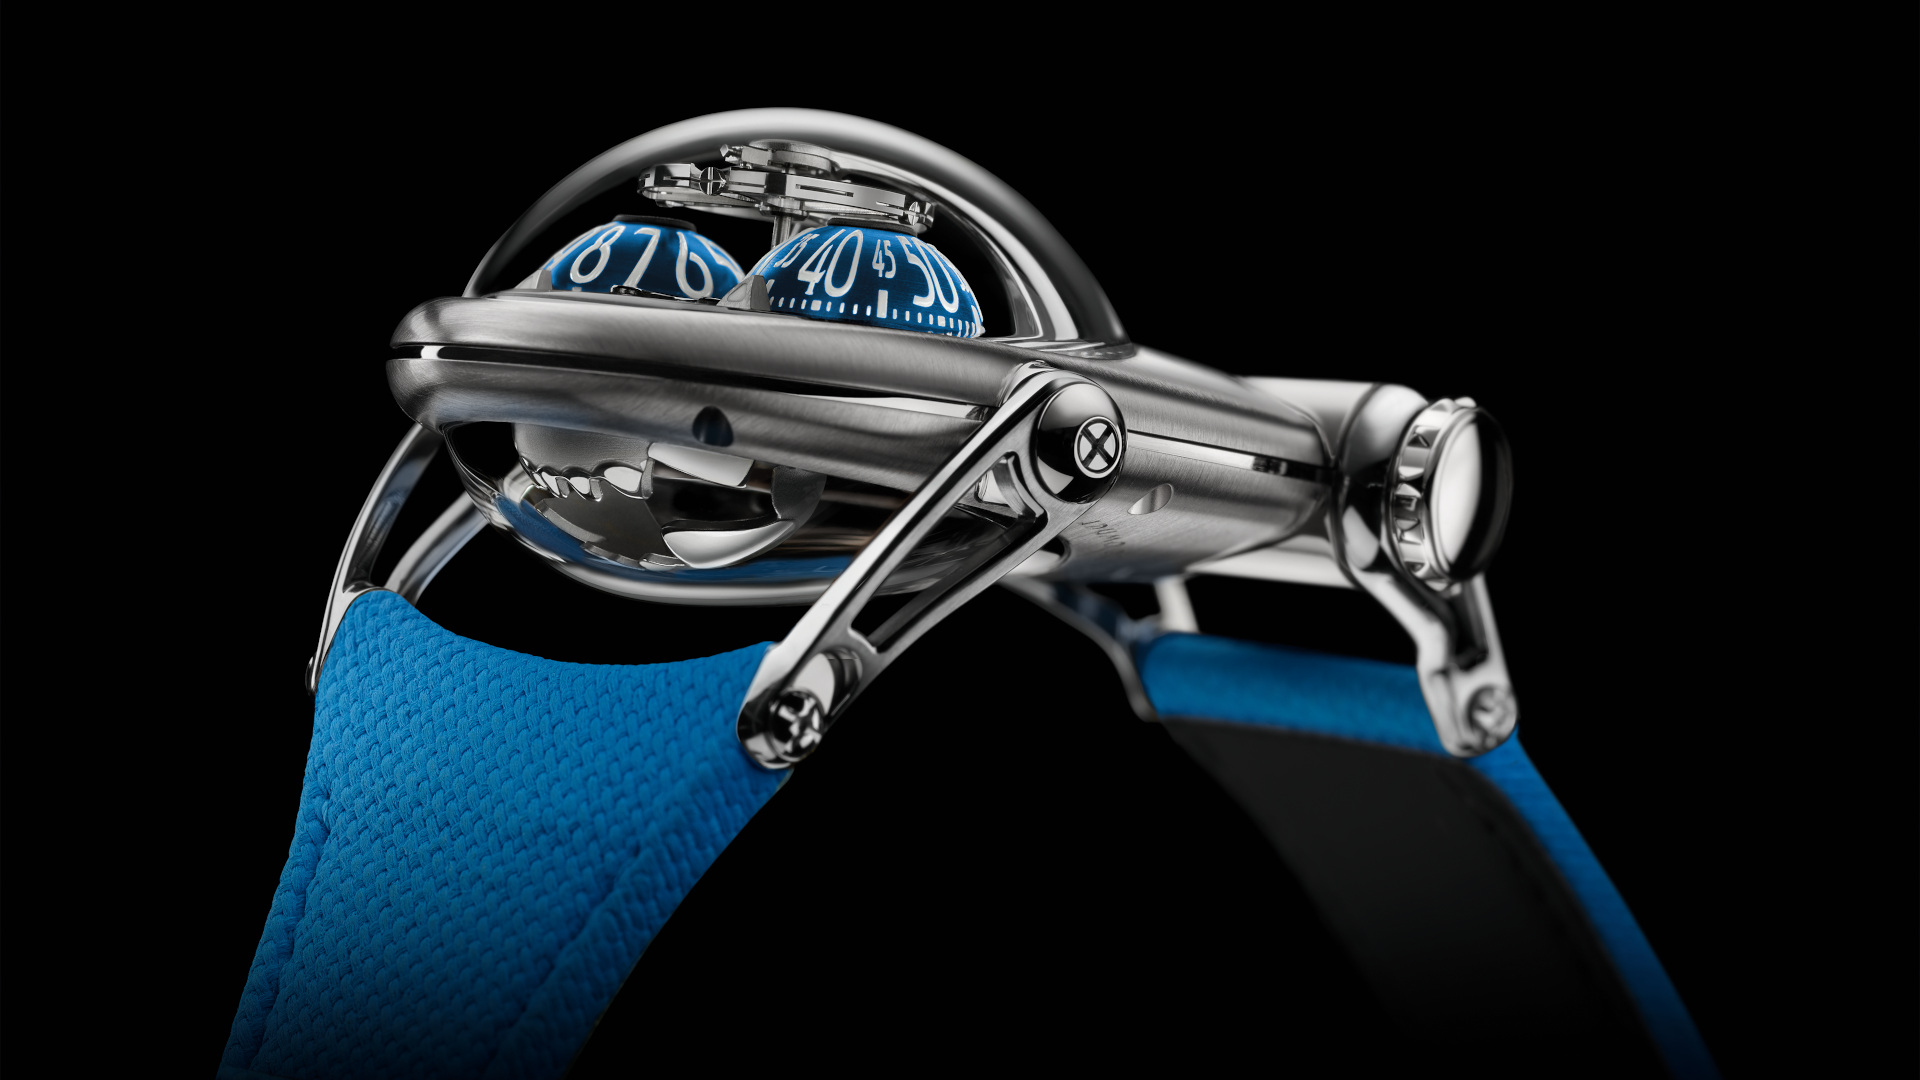 The MB&F HM10 Bulldog is quite possibly man's best friend